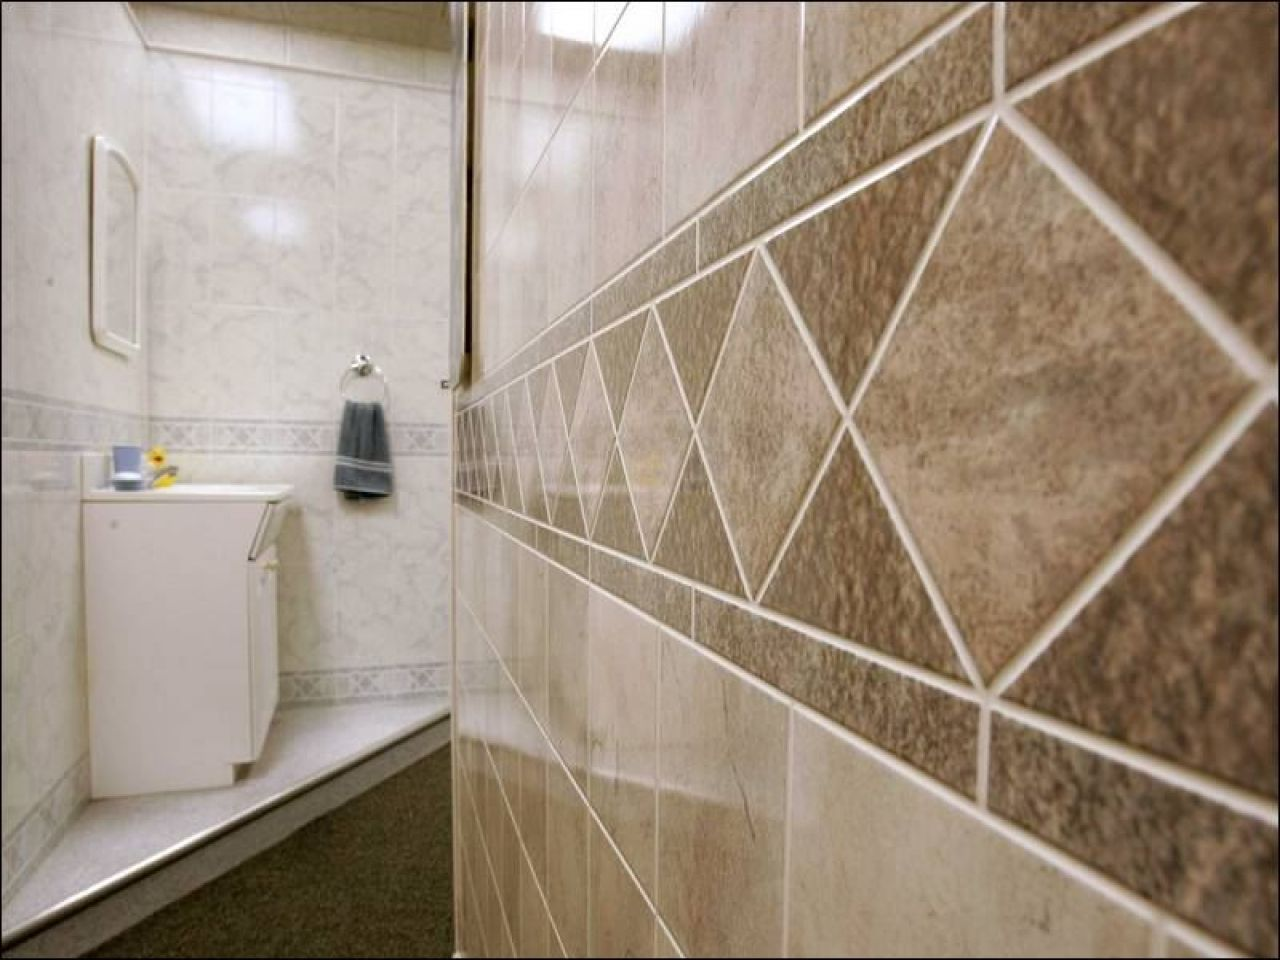 Bathroom wall tile board ideas pinterest tile installation tile board for bathroom walls toilet tiles would be the most detailed part of your own bathroom design toilet tiles in man doublecrazyfo Images